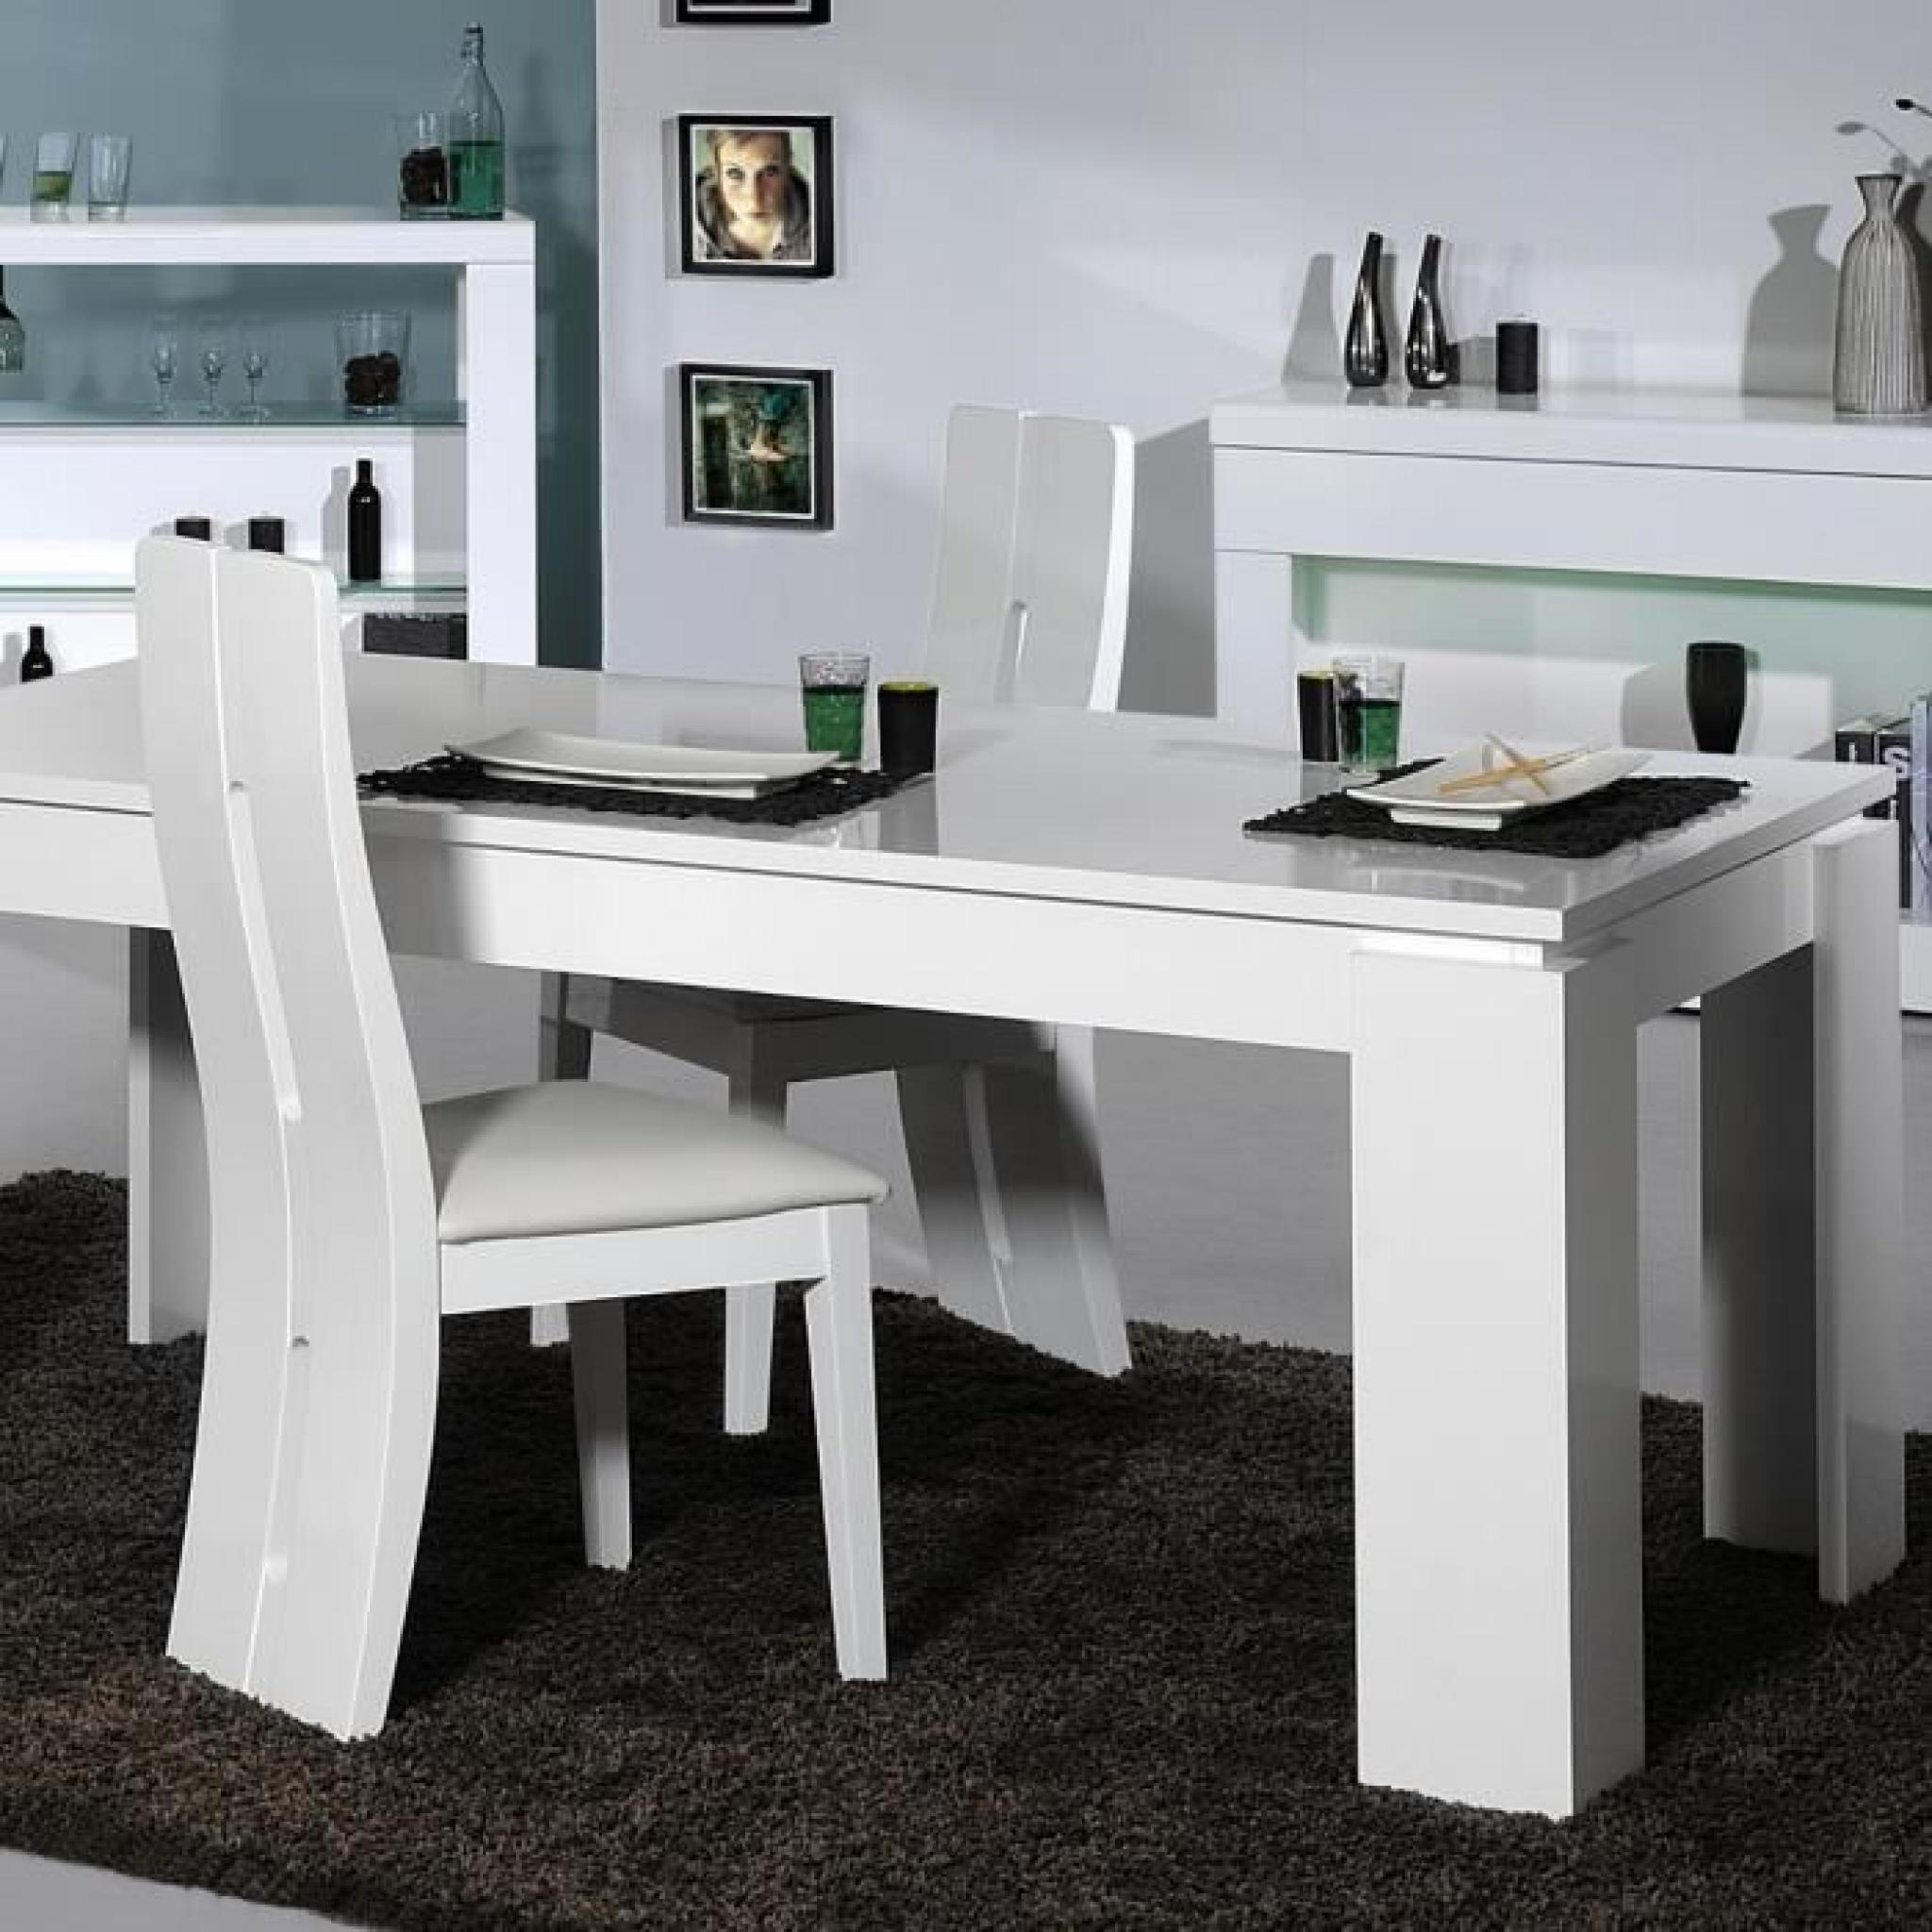 Table a manger et chaises pas cher maison design for Table a manger design pas cher